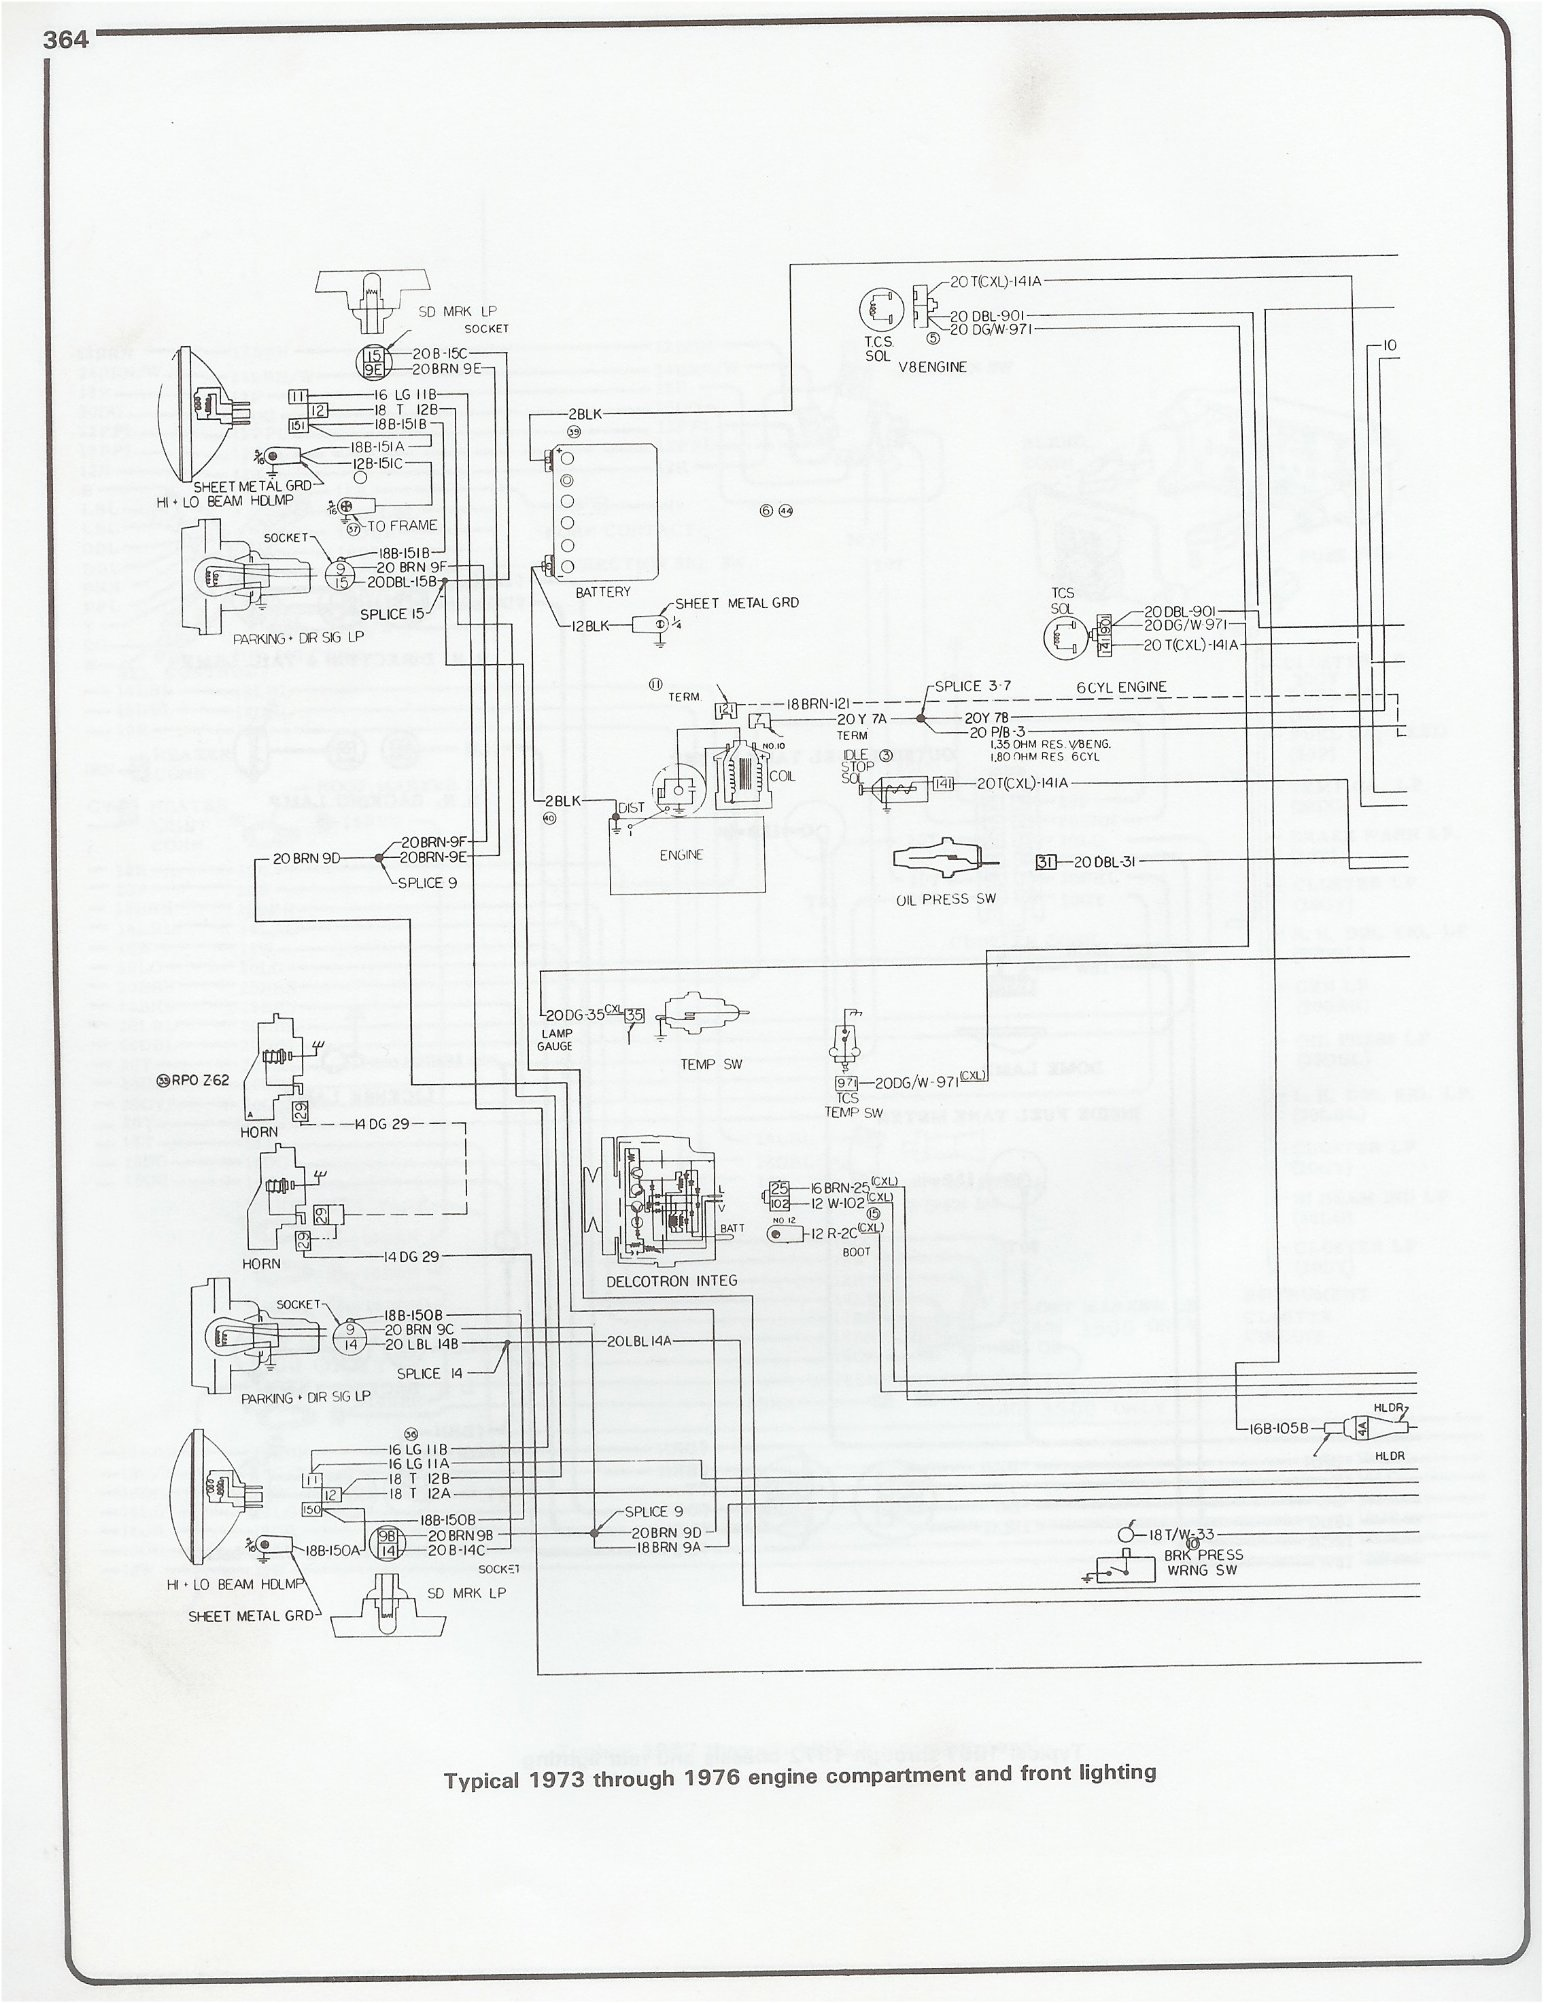 Eng Frt Light on 2000 Gmc Radio Wiring Diagram